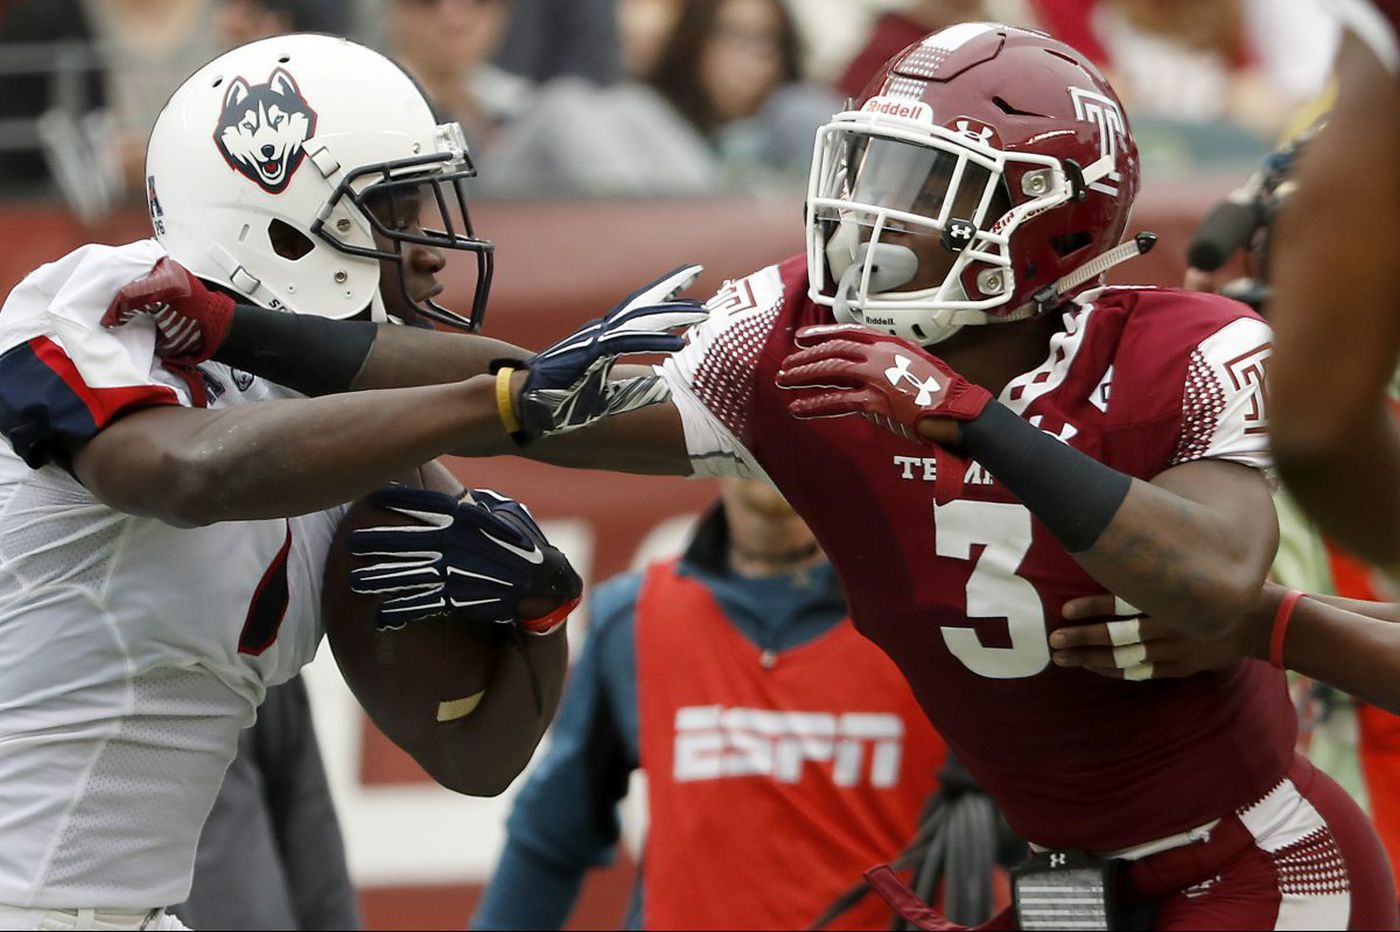 Temple's Sean Chandler looking to prove himself to NFL teams